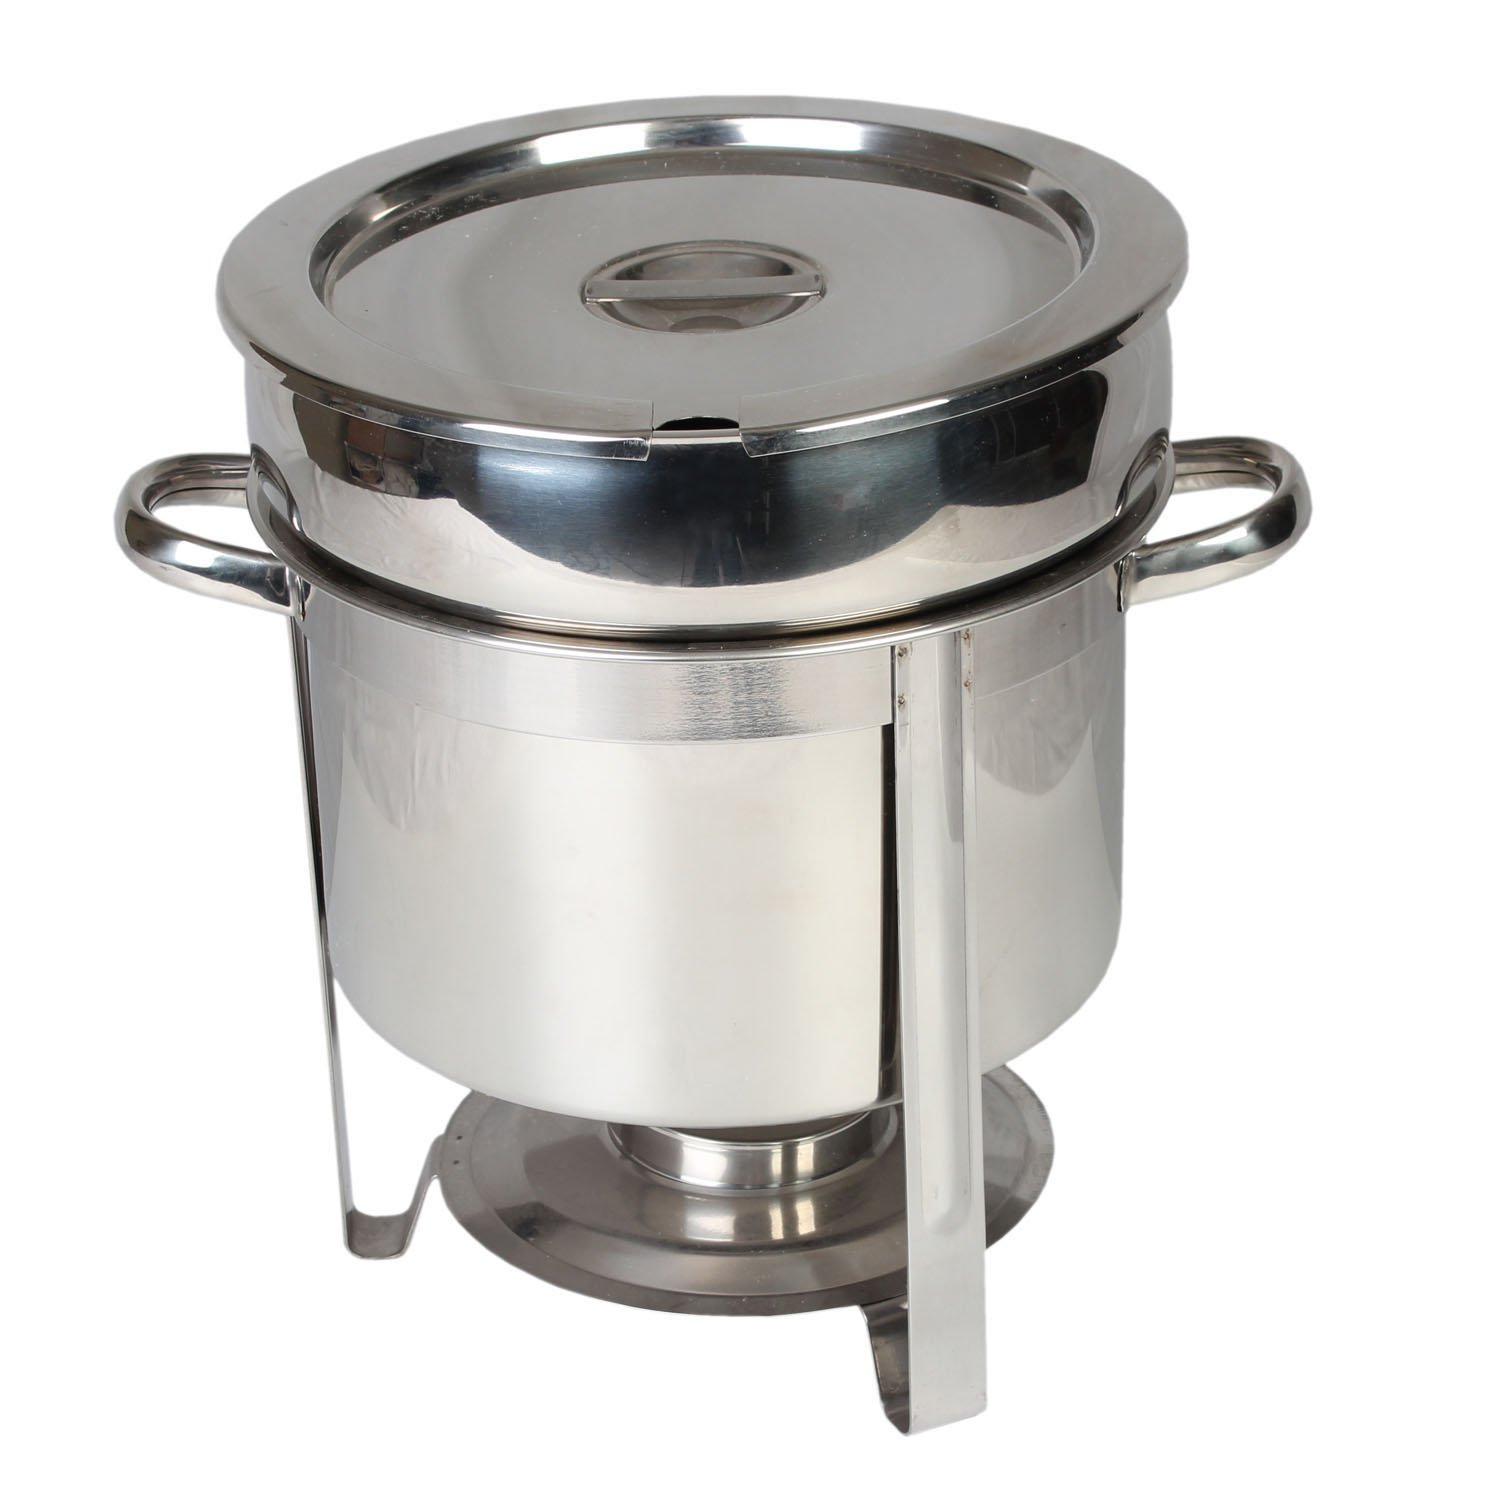 Excellanté Stainless Steel 11 Quart Marmite Chafer